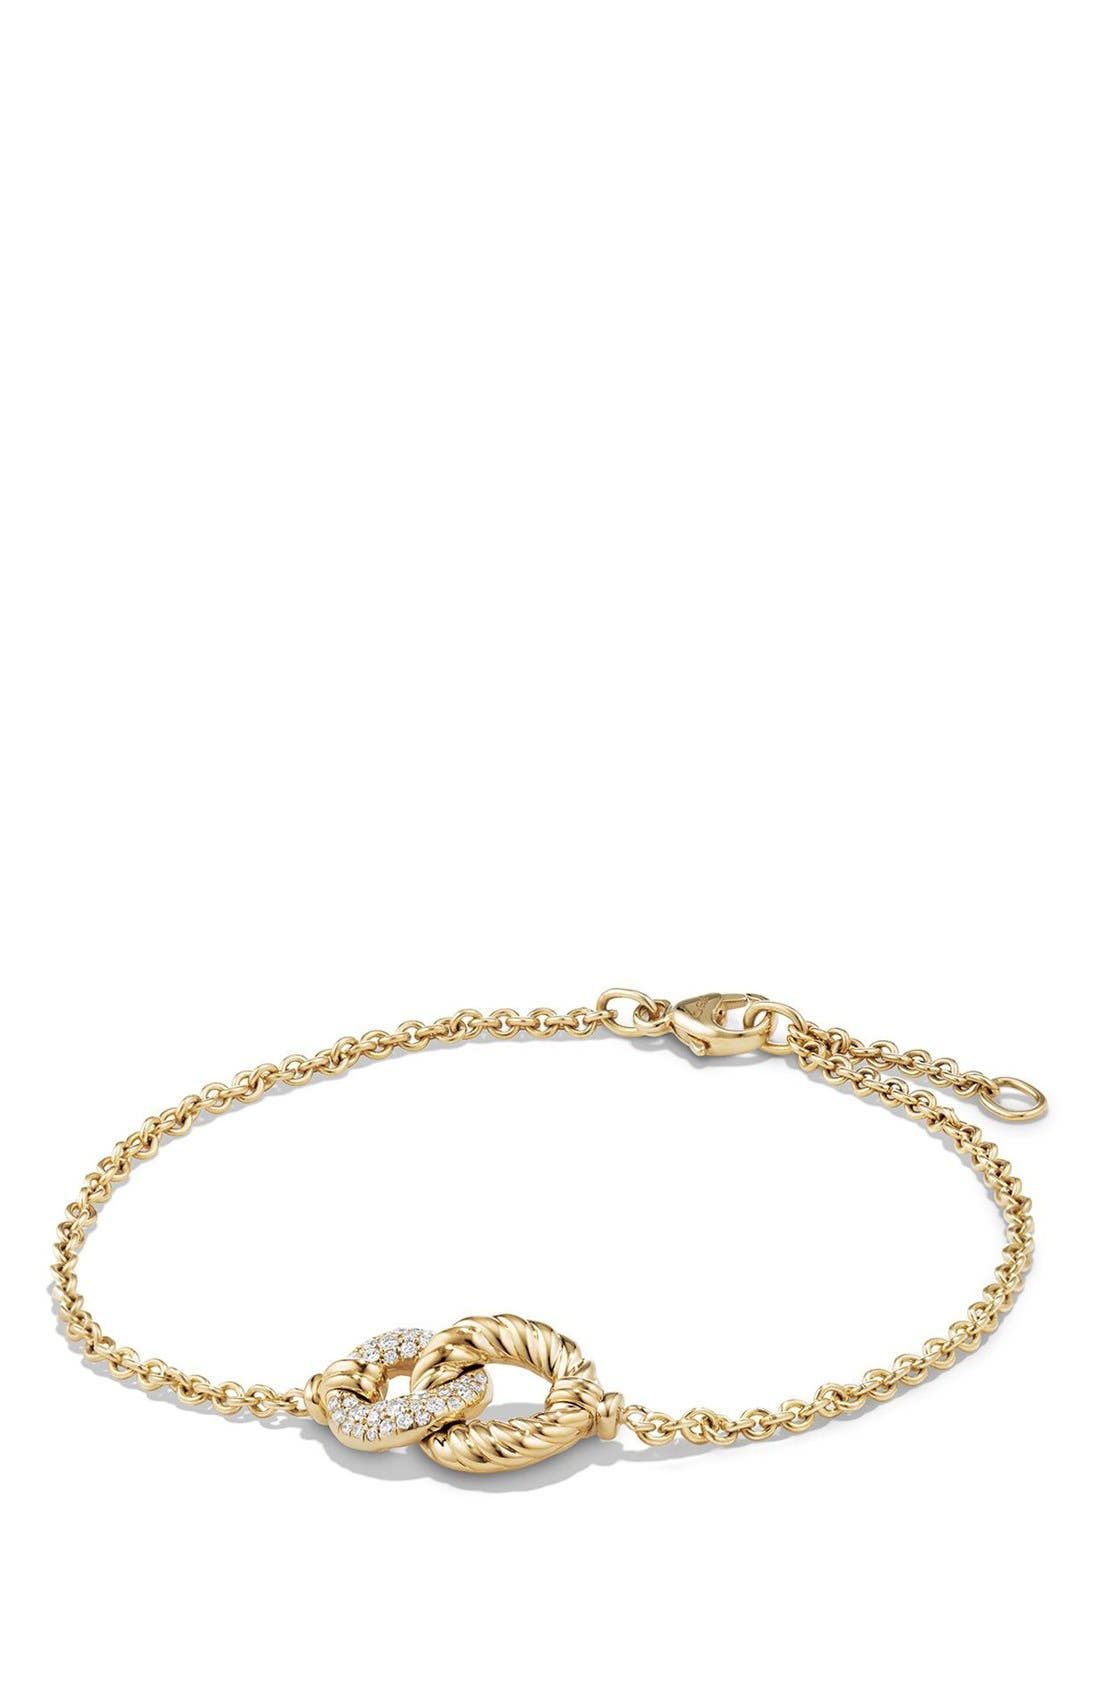 David Yurman Belmont Single Station Bracelet